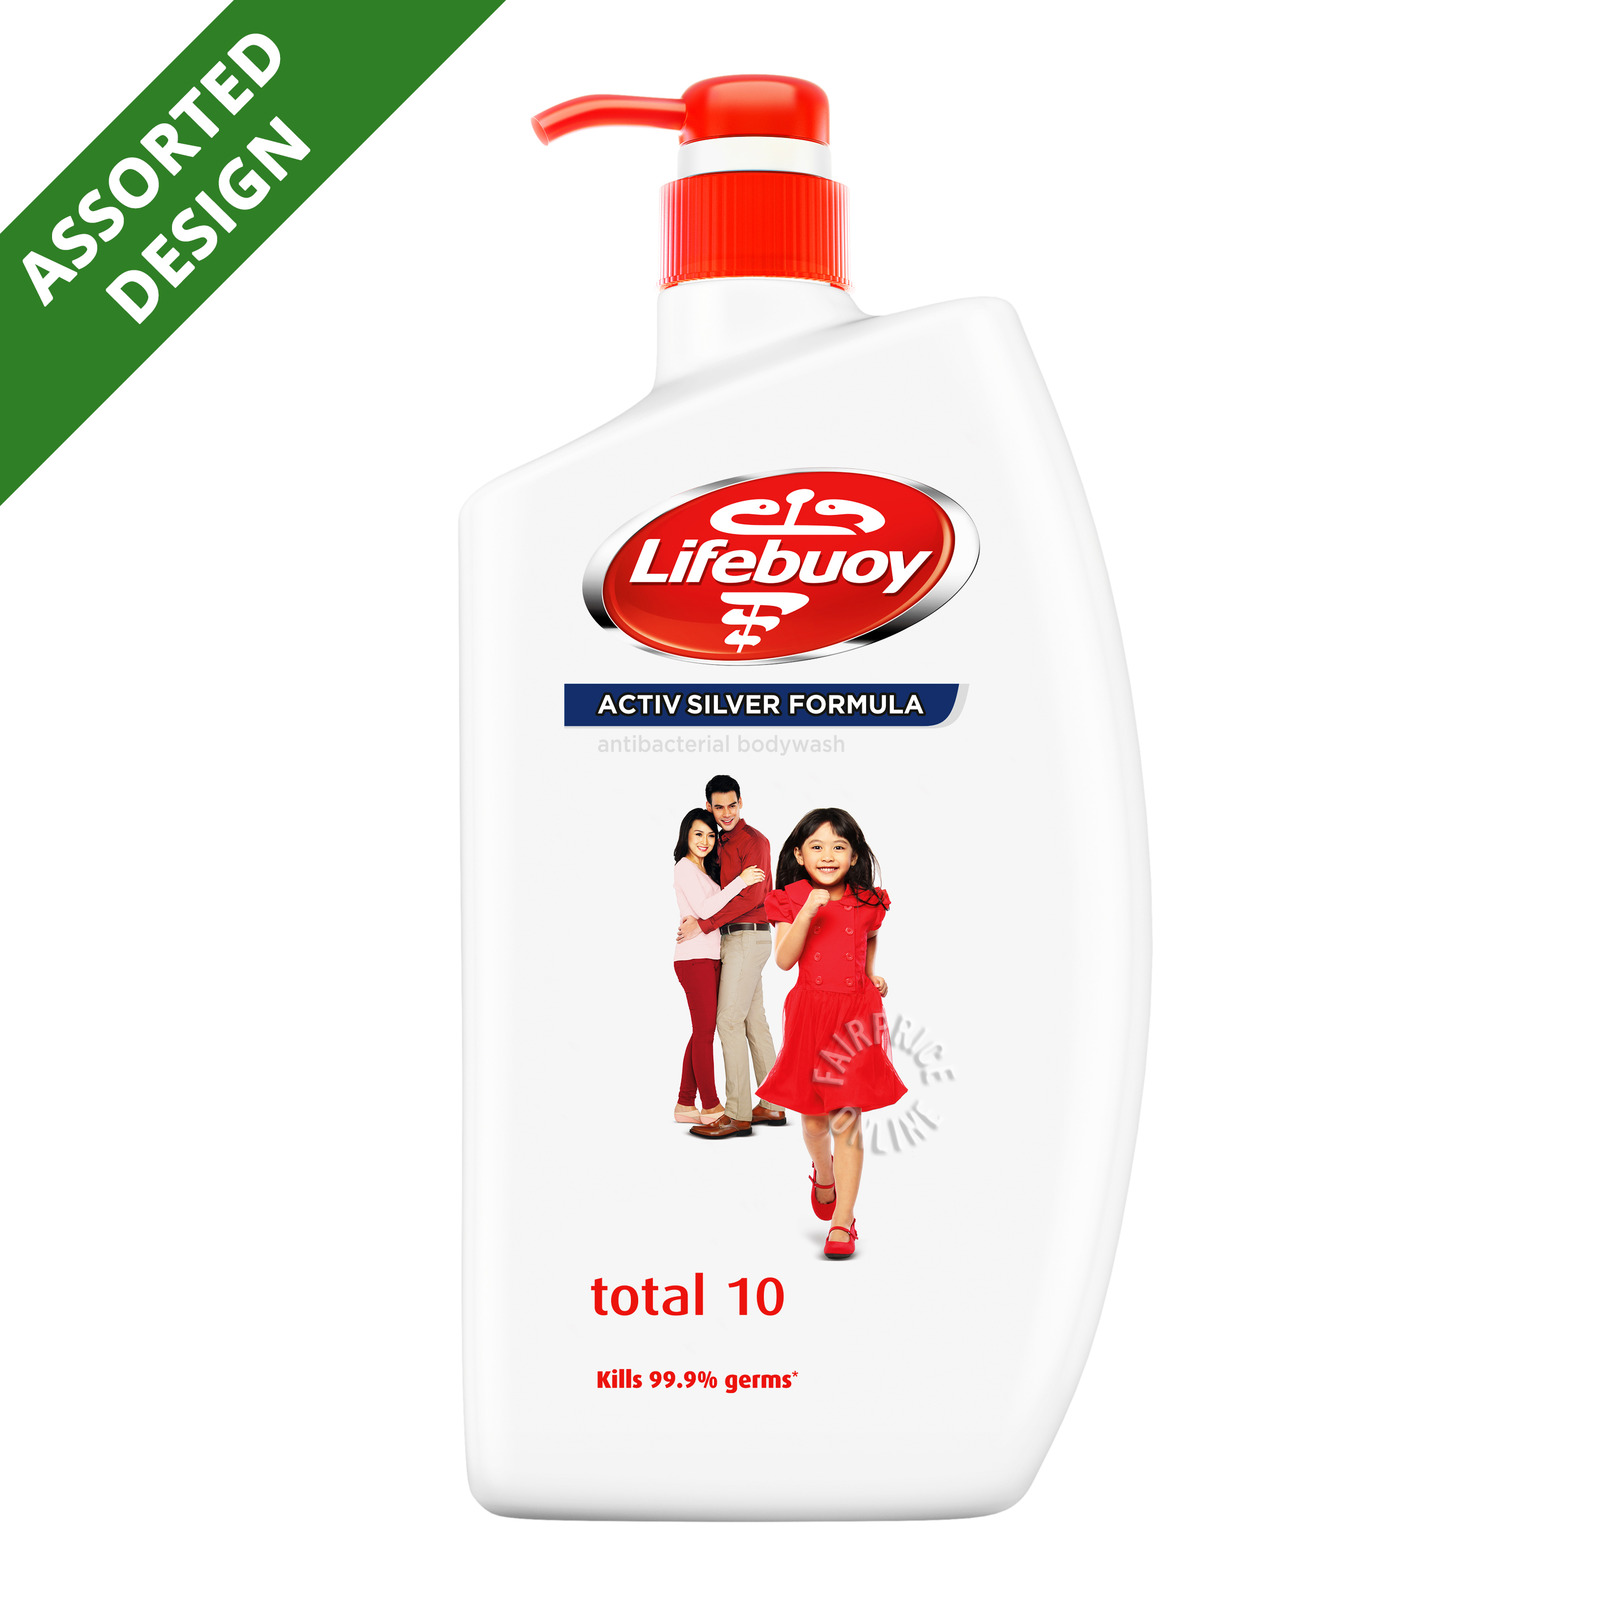 Lifebuoy Antibacterial Body Wash - Total 10